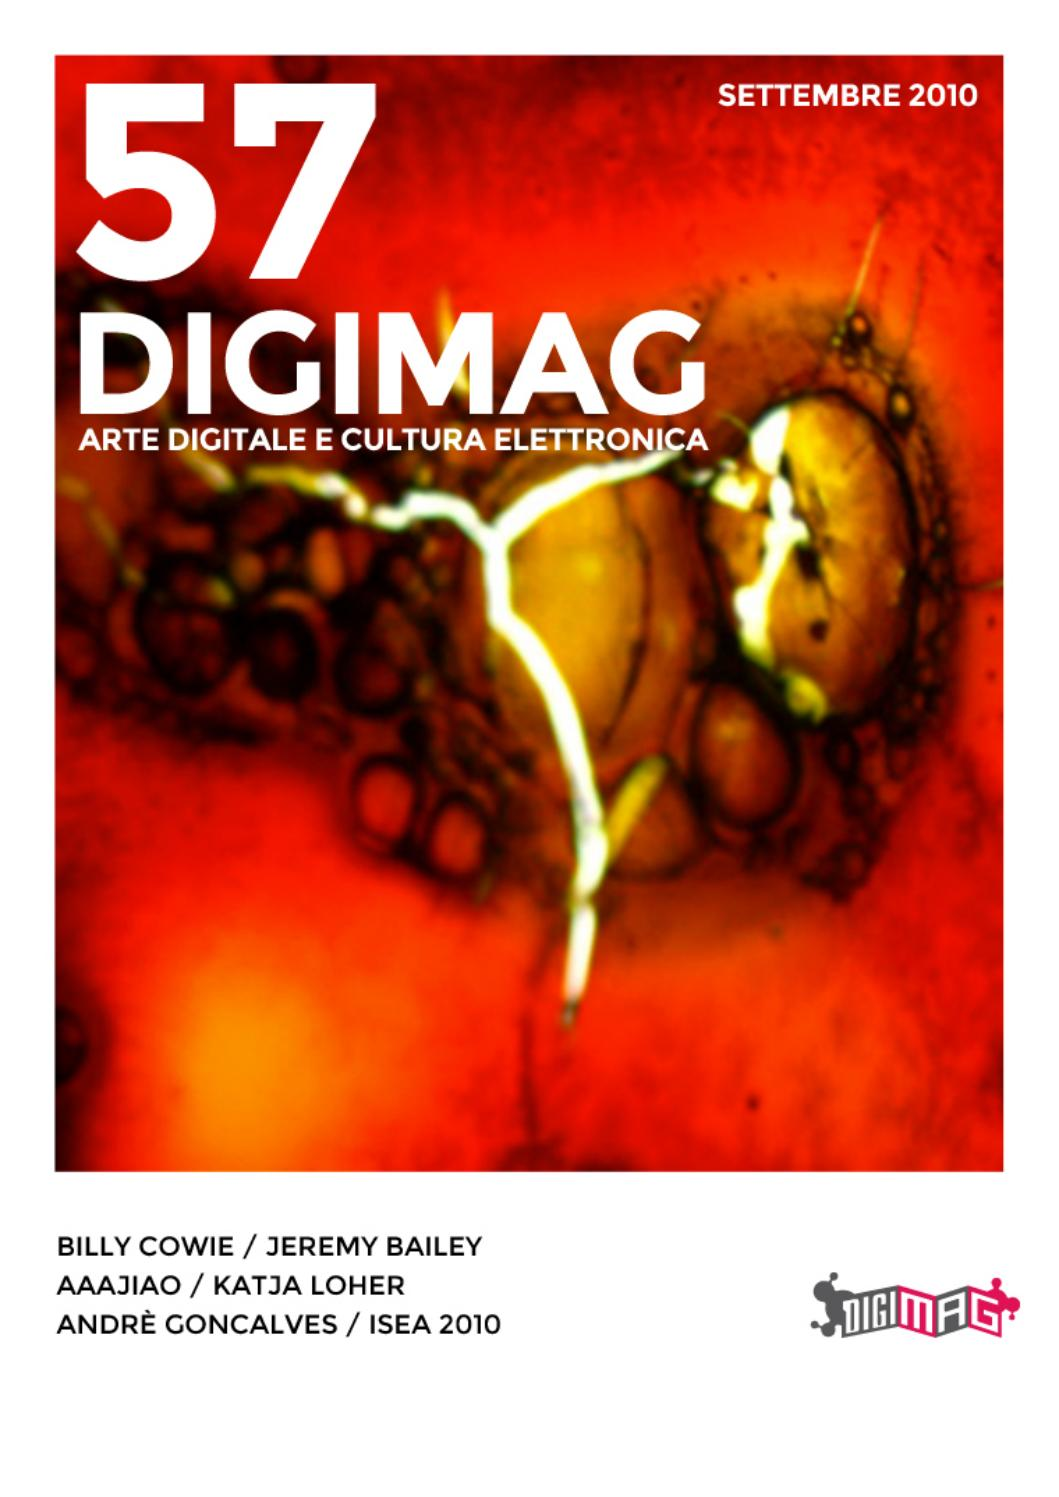 DIGIMAG 57 SETTEMBRE 2010 by Digicult Editions issuu